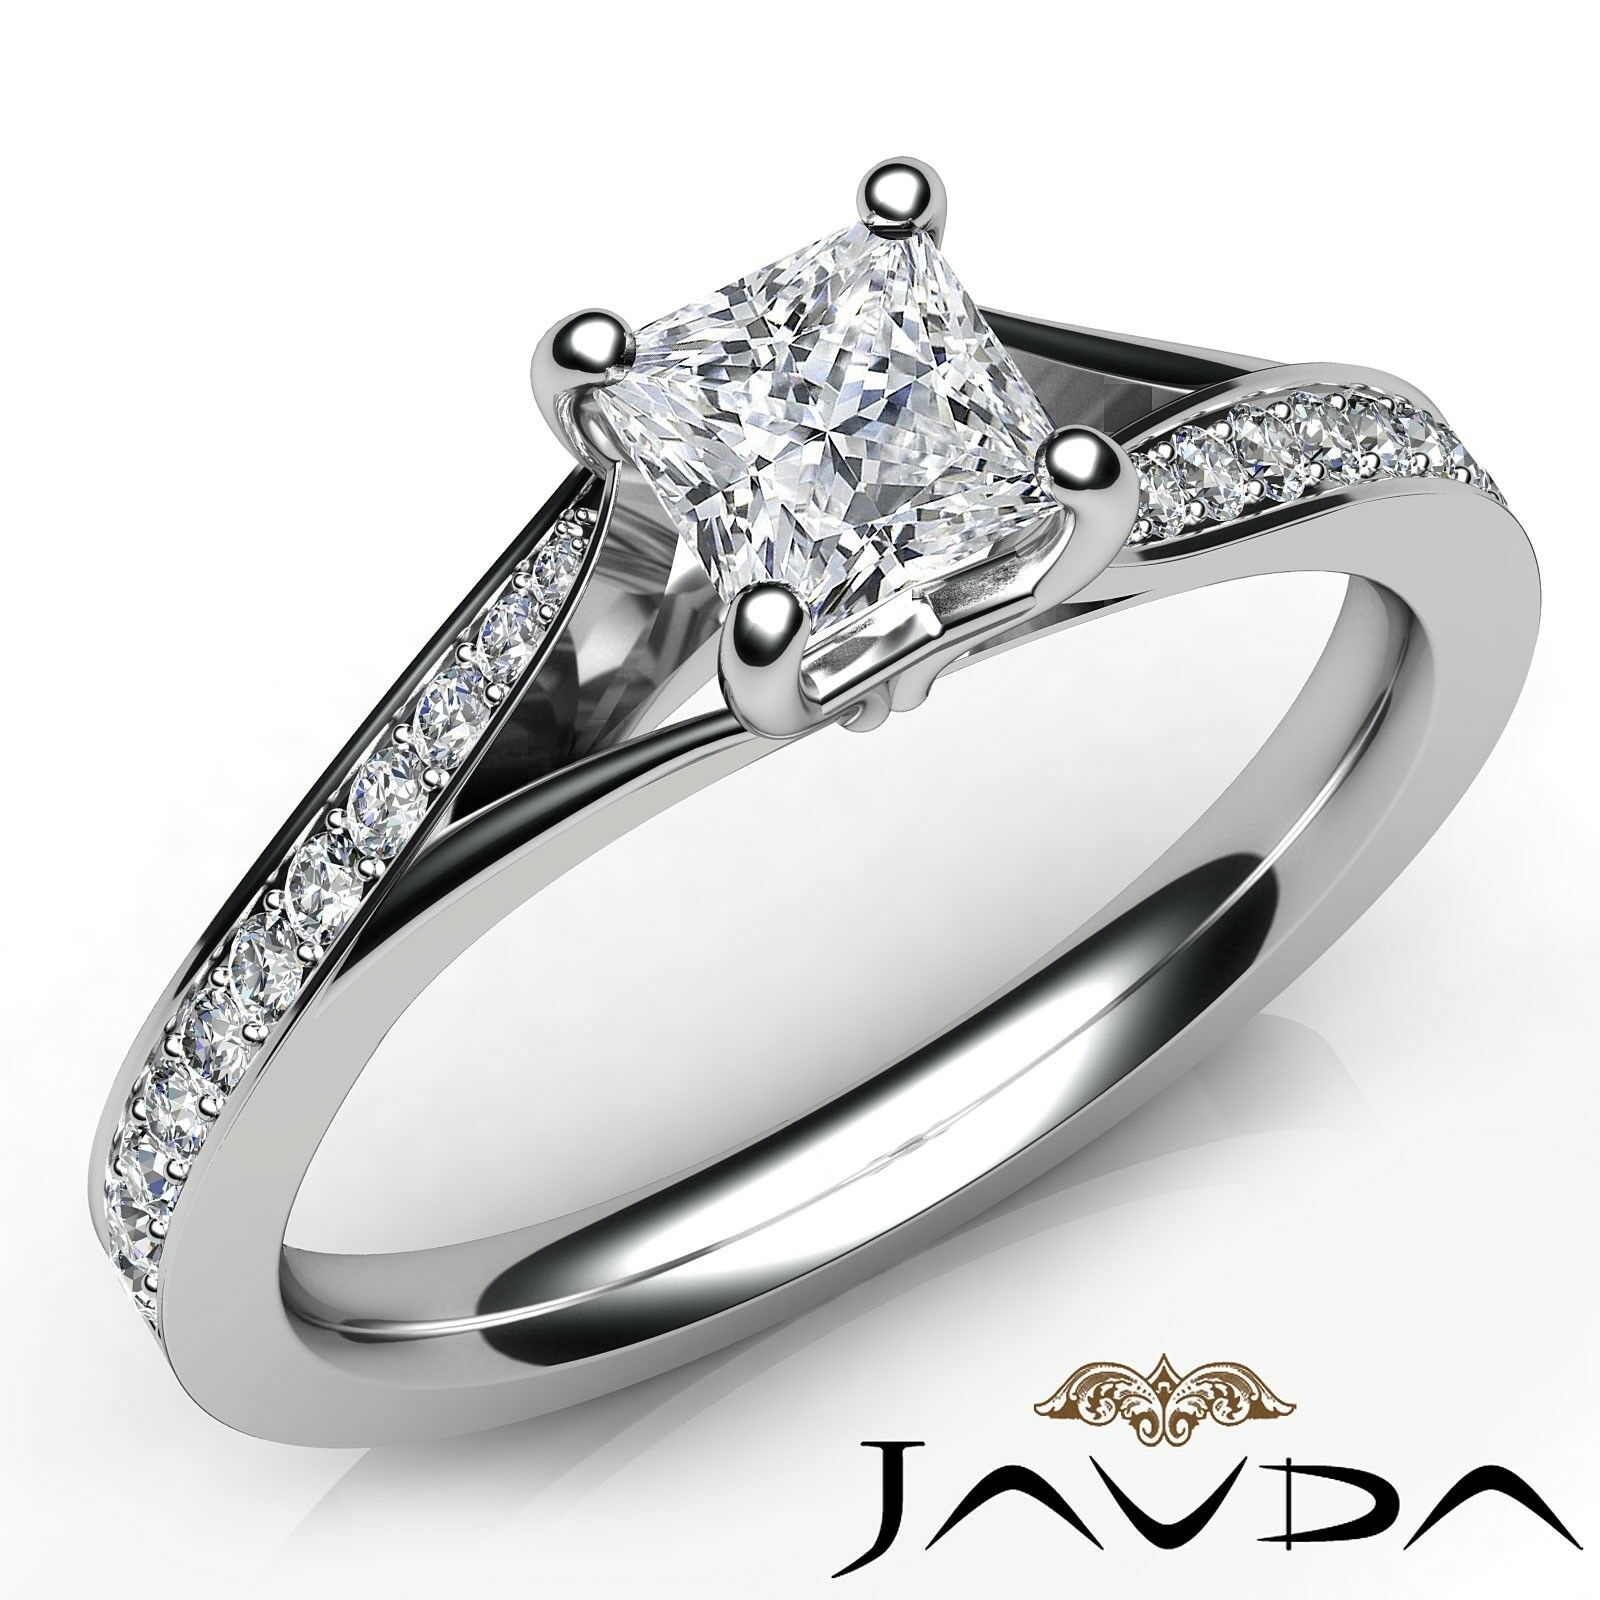 0.96ctw Cathedral Rings Princess Diamond Engagement Ring GIA H-VVS1 White Gold